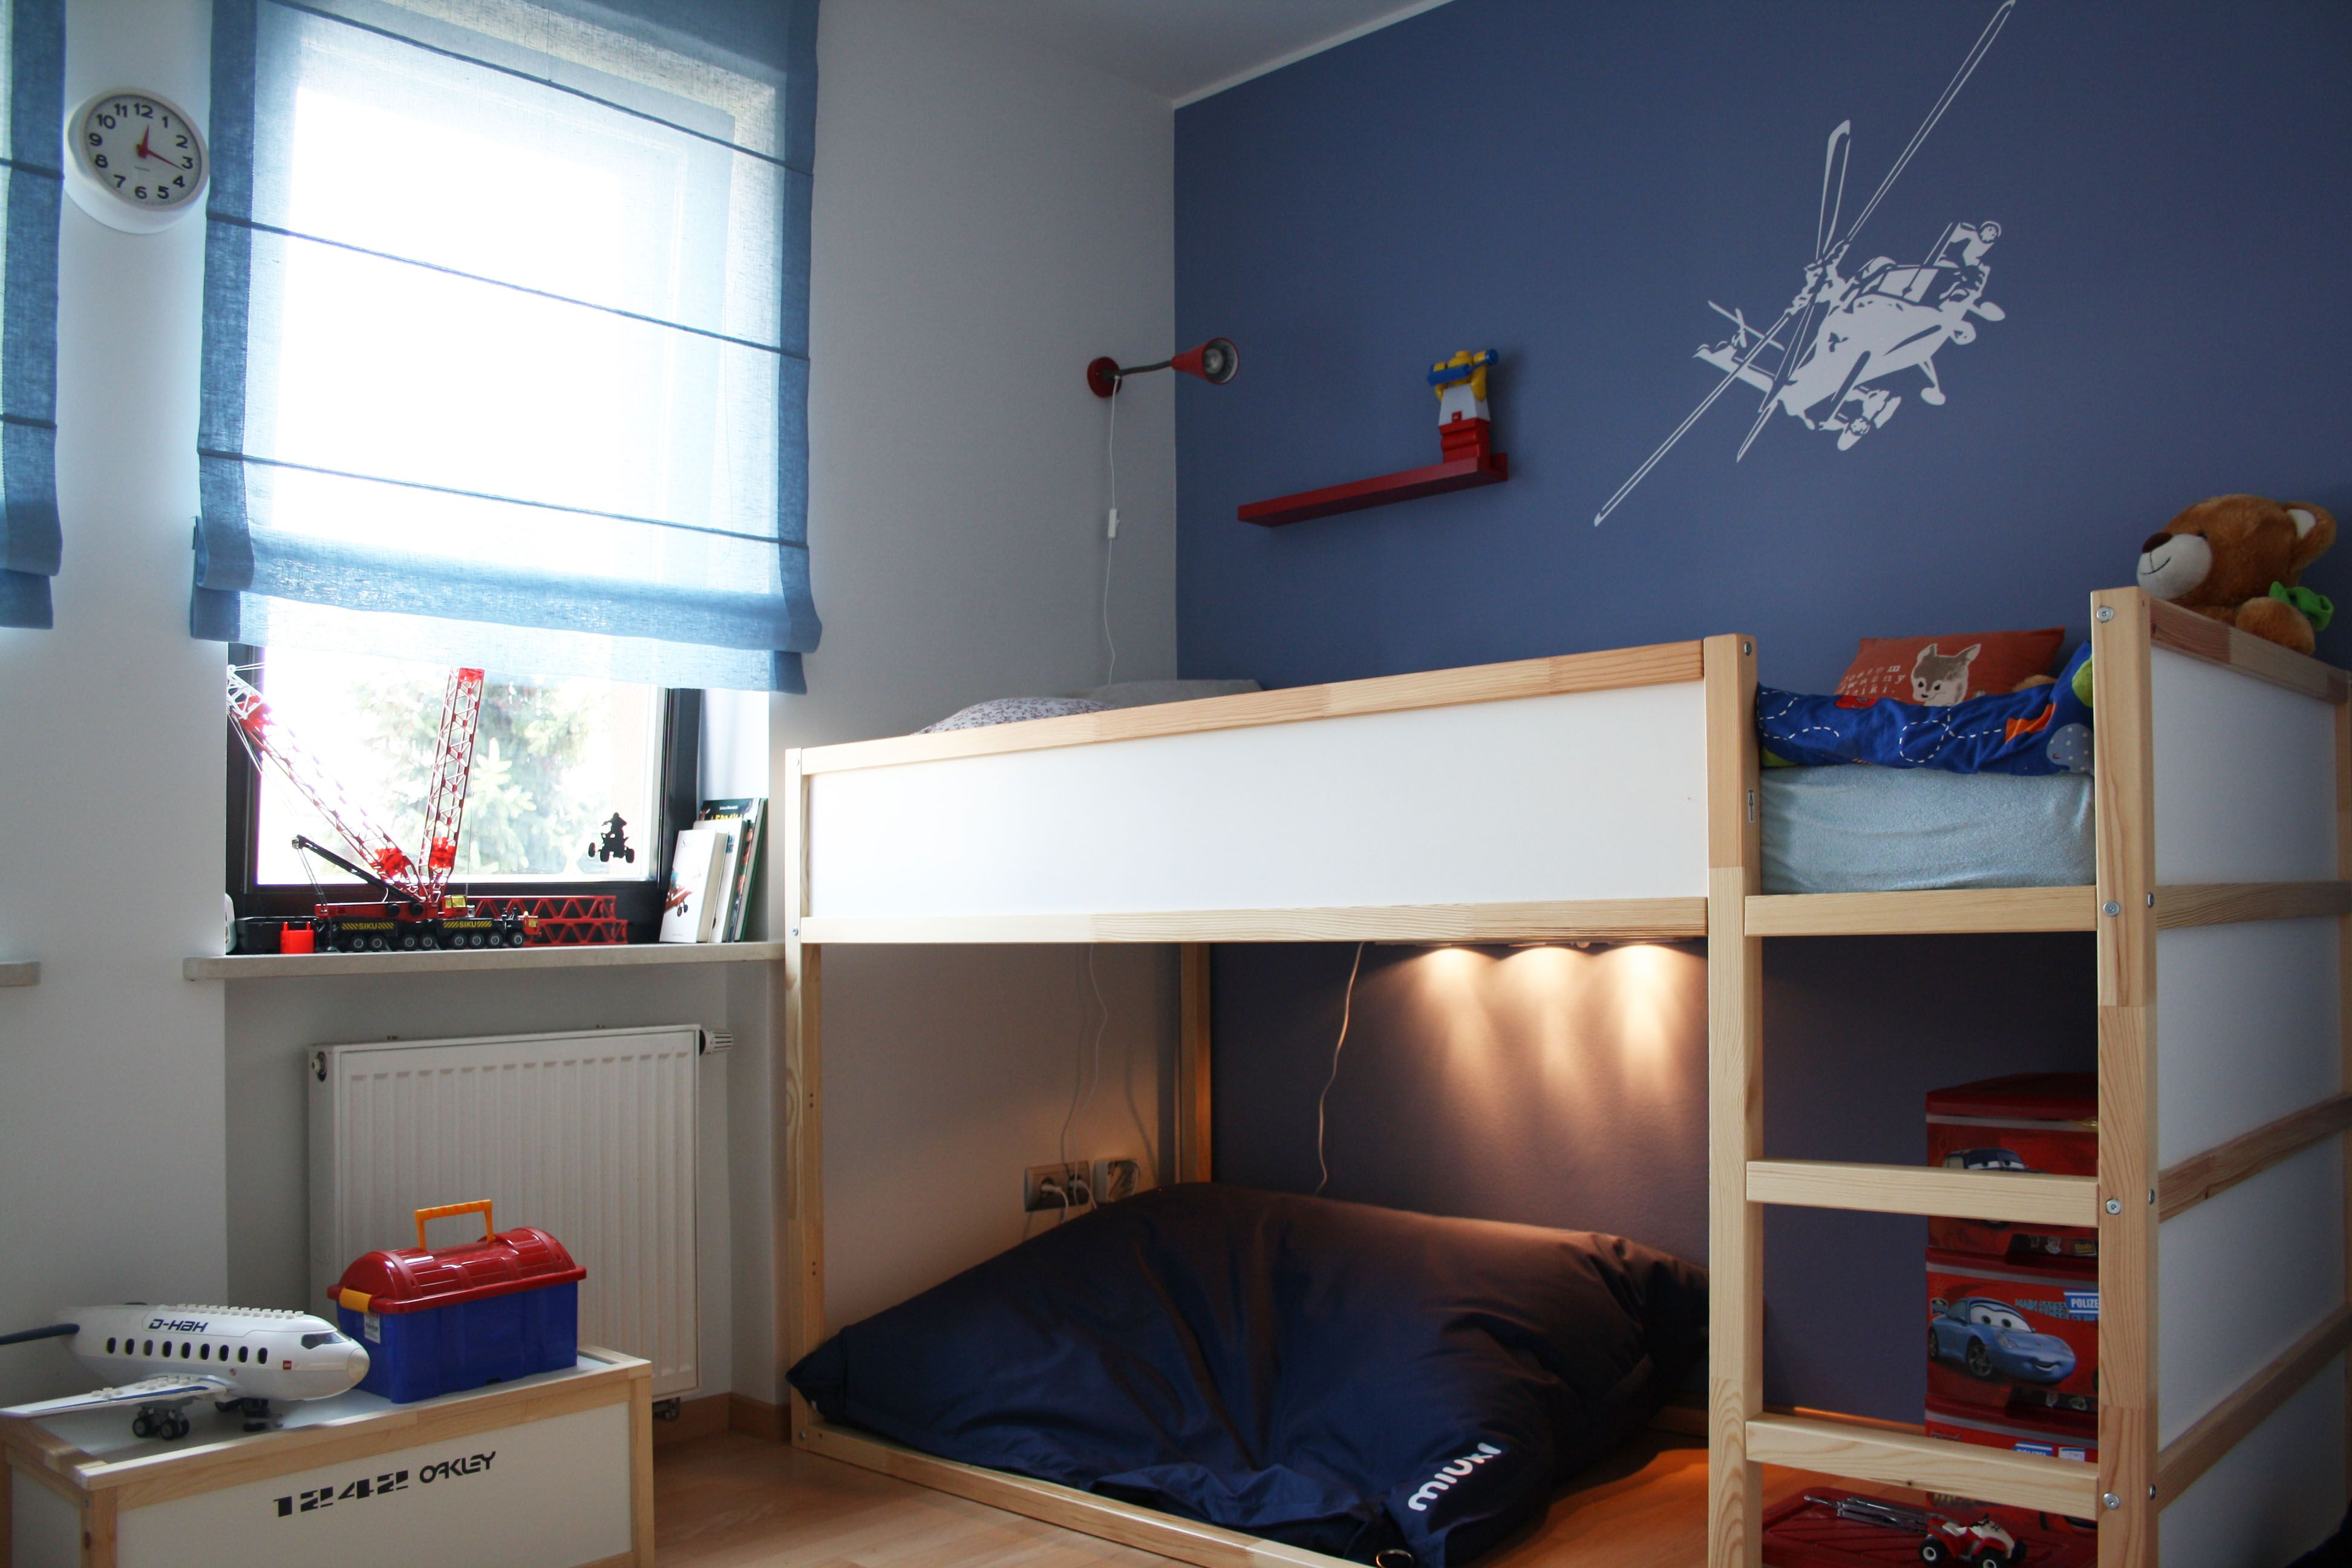 7 Year Old Boys Bedroom Airplanes And Helicopters Boy Room